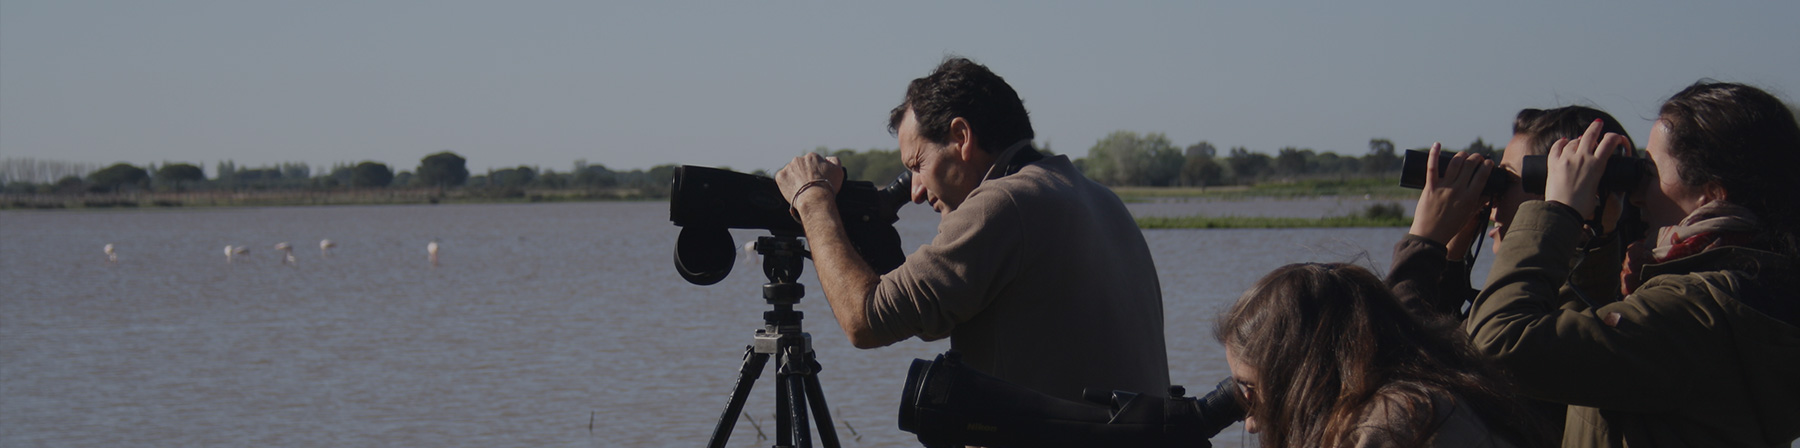 Birdwatching private tour and photography - Doñana Reservas